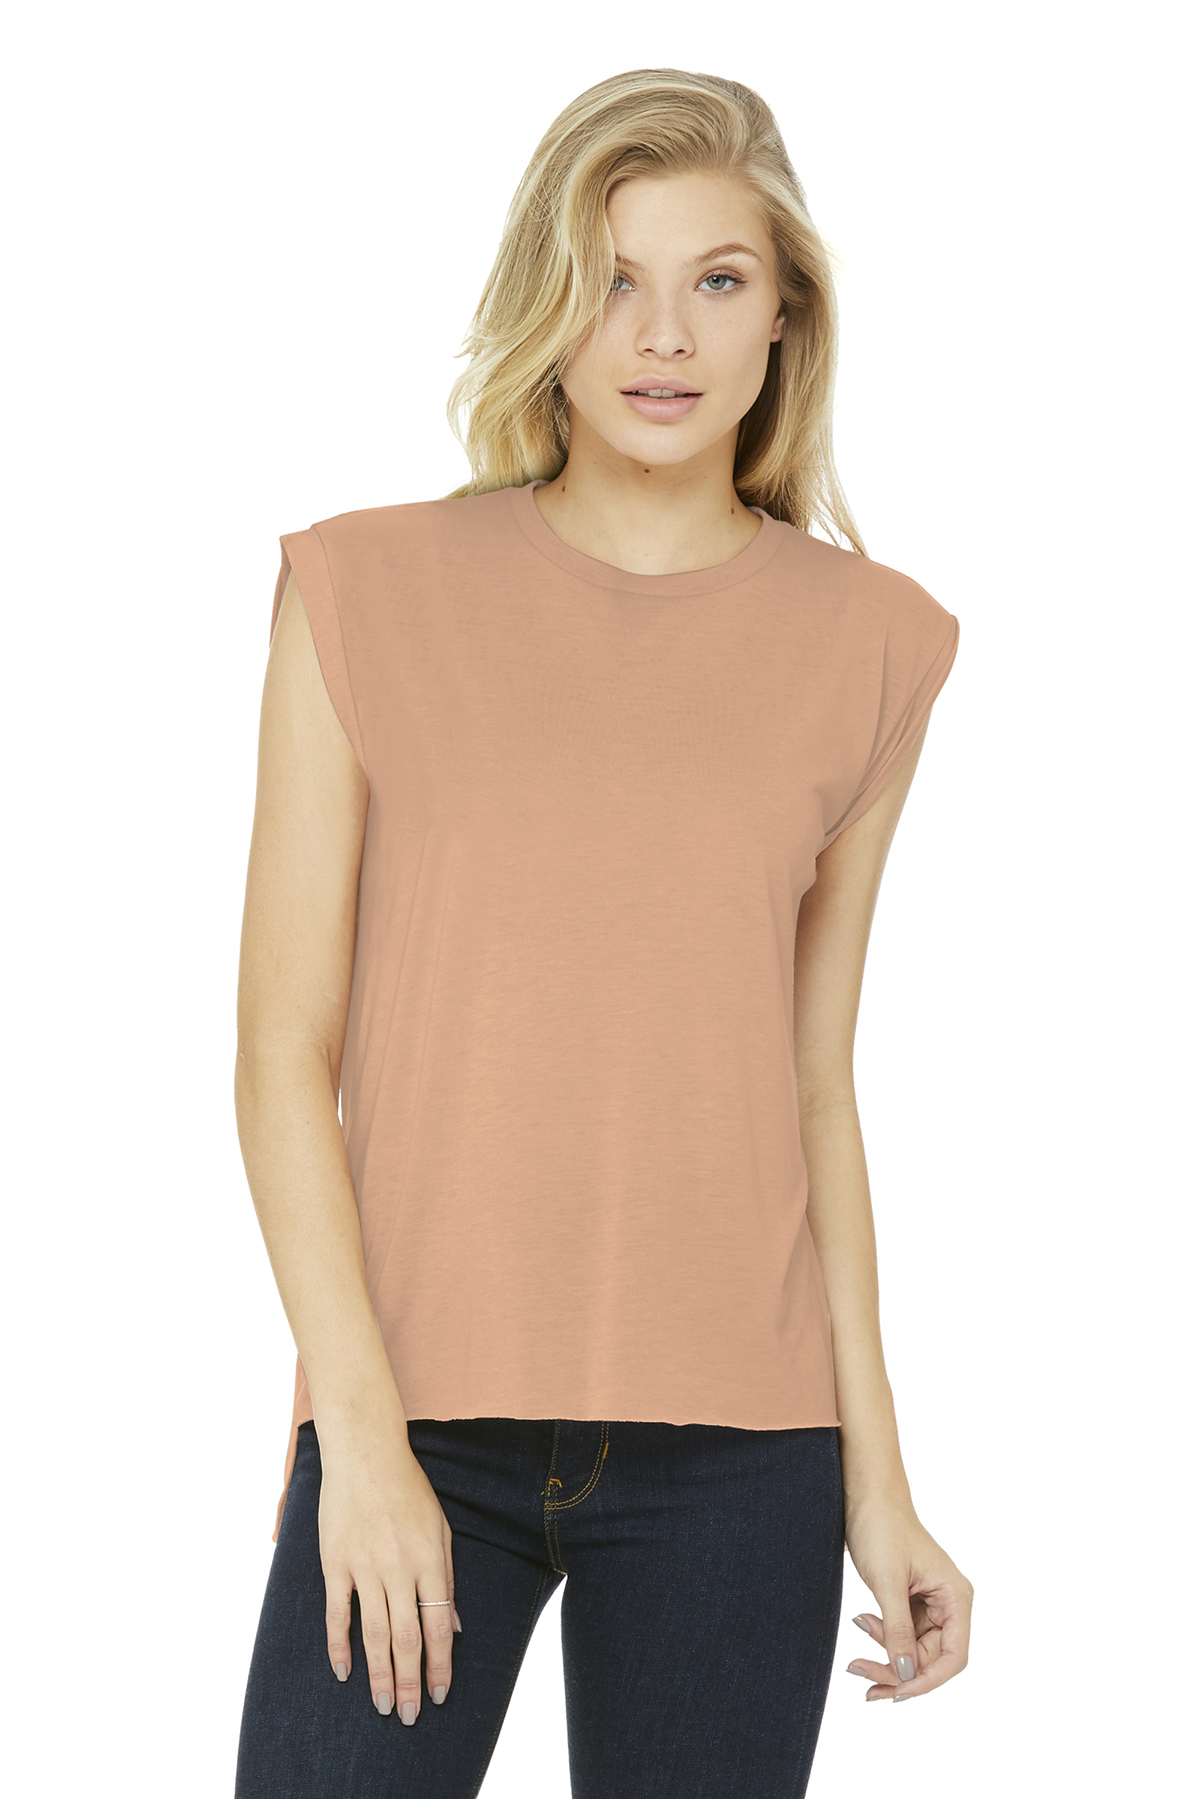 656ee2733f BELLA+CANVAS ® Women's Flowy Muscle Tee With Rolled Cuffs ...